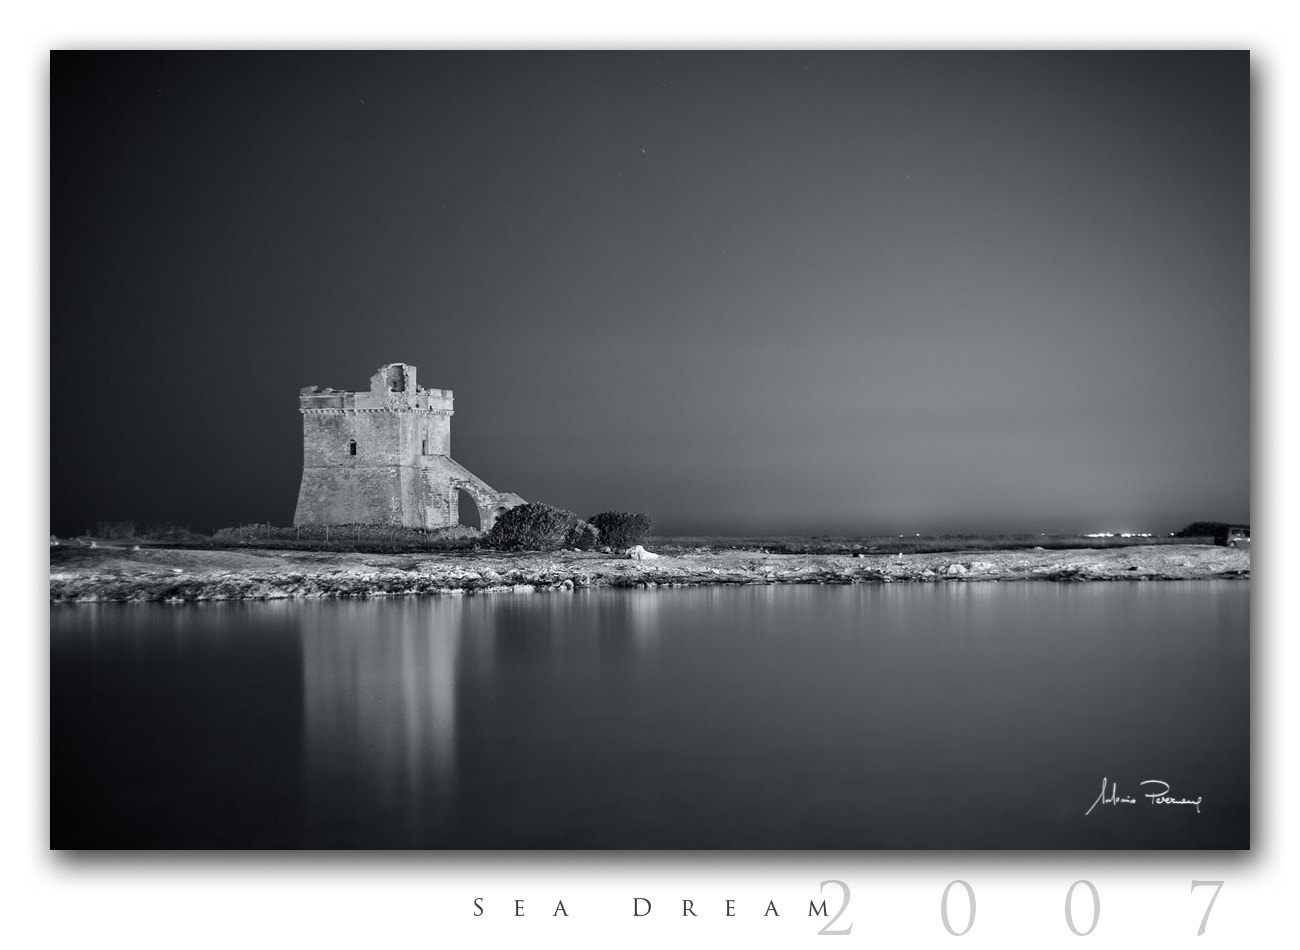 Photograph Sea Dream by Antonio Perrone on 500px